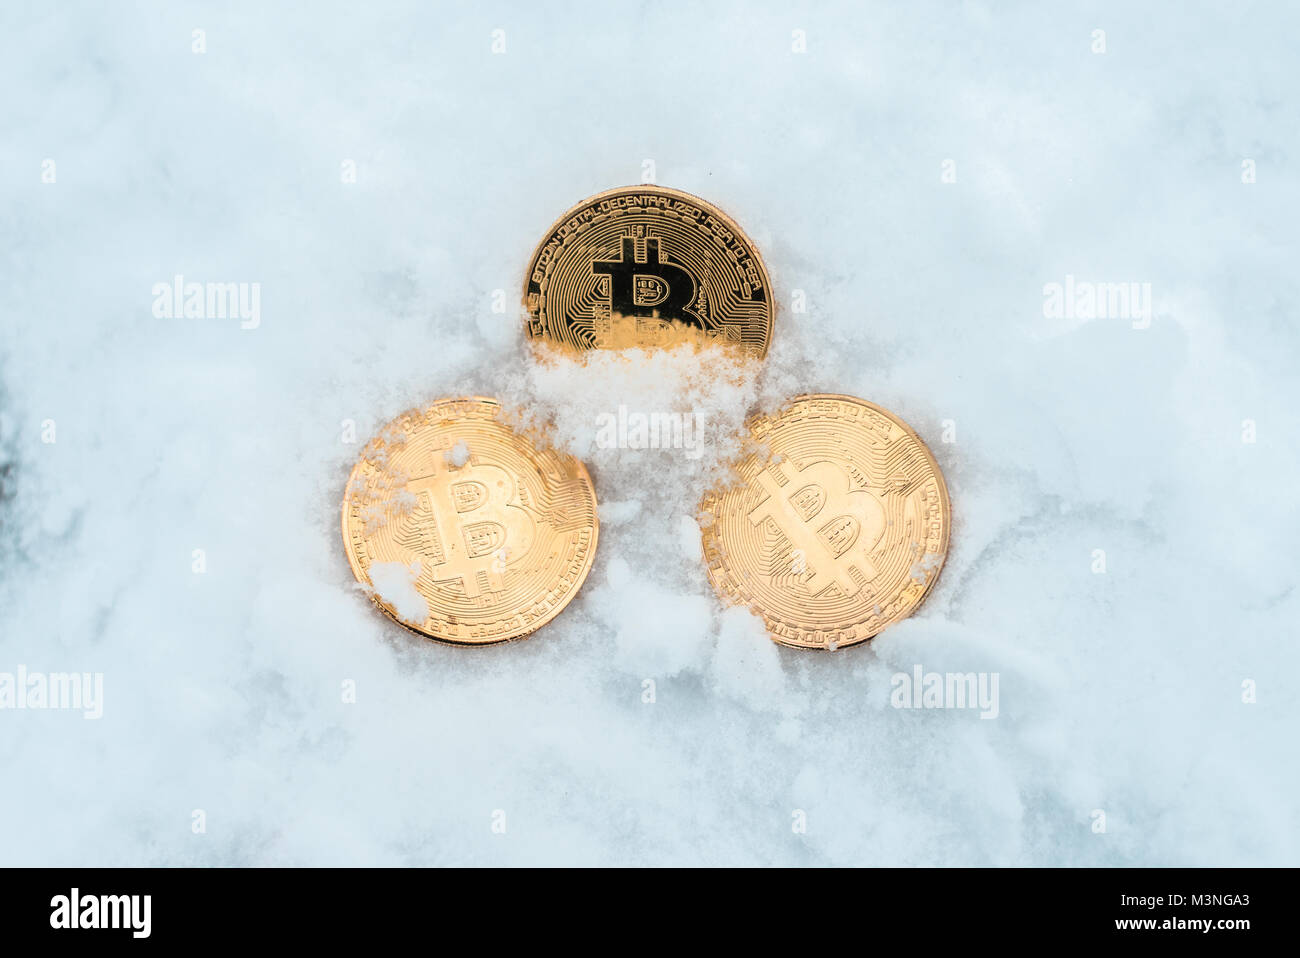 Discarded money. Metal gold coins bitcoin, crypto currency money in winter on snow lie in snowdrift. - Stock Image